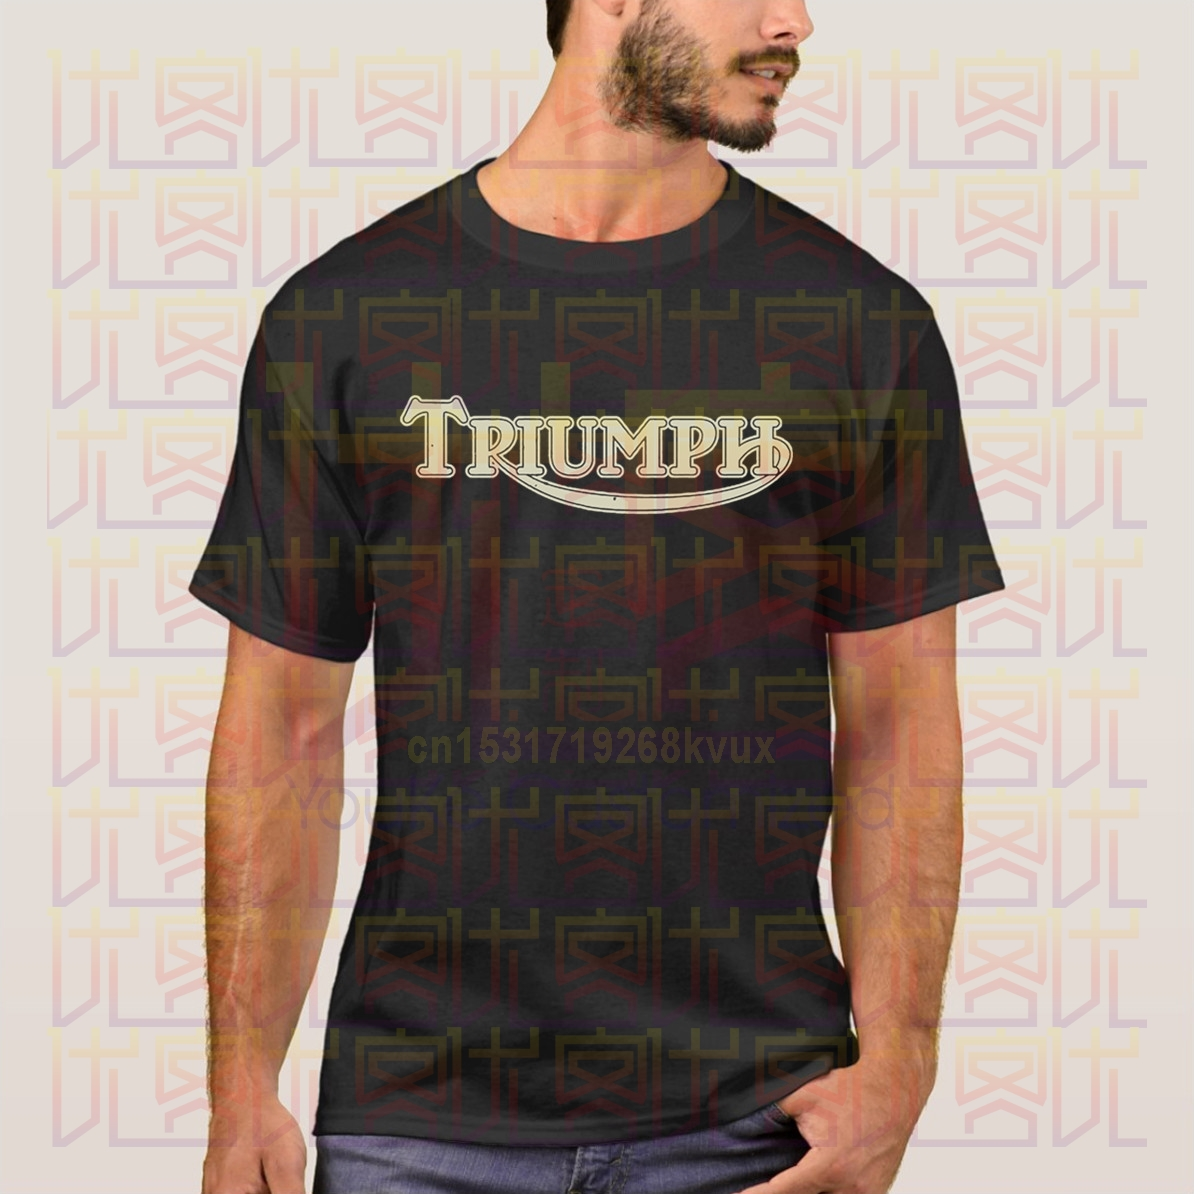 80s Hip Hop Vintage Triumph Motorcycle T-Shirts Men Tee Apparel Men's Creative Short Sleeve Xxl T-Shirt